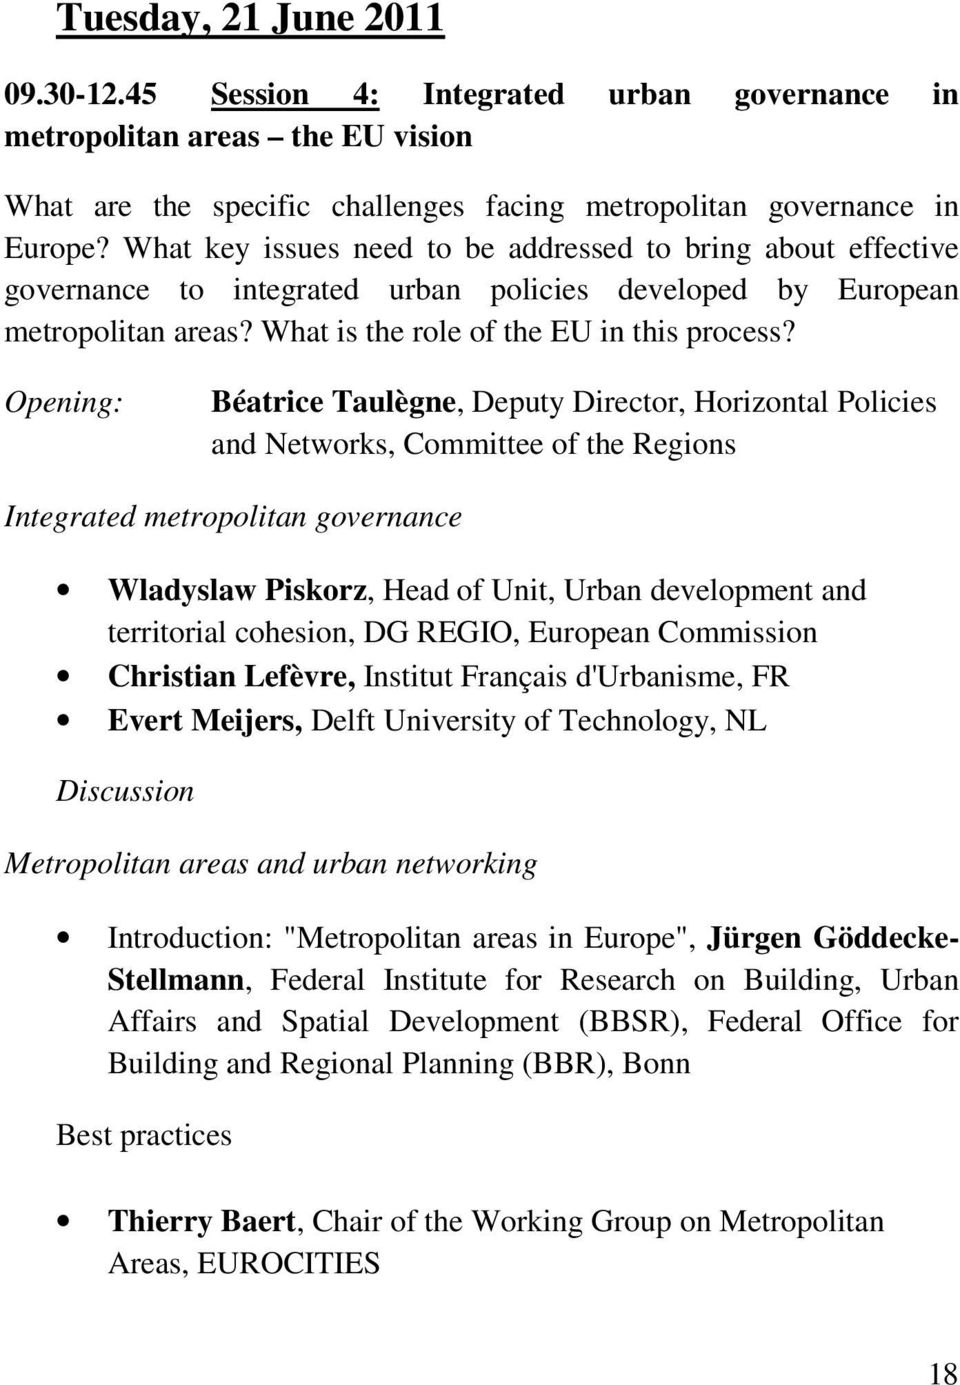 Opening: Béatrice Taulègne, Deputy Director, Horizontal Policies and Networks, Committee of the Regions Integrated metropolitan governance Wladyslaw Piskorz, Head of Unit, Urban development and